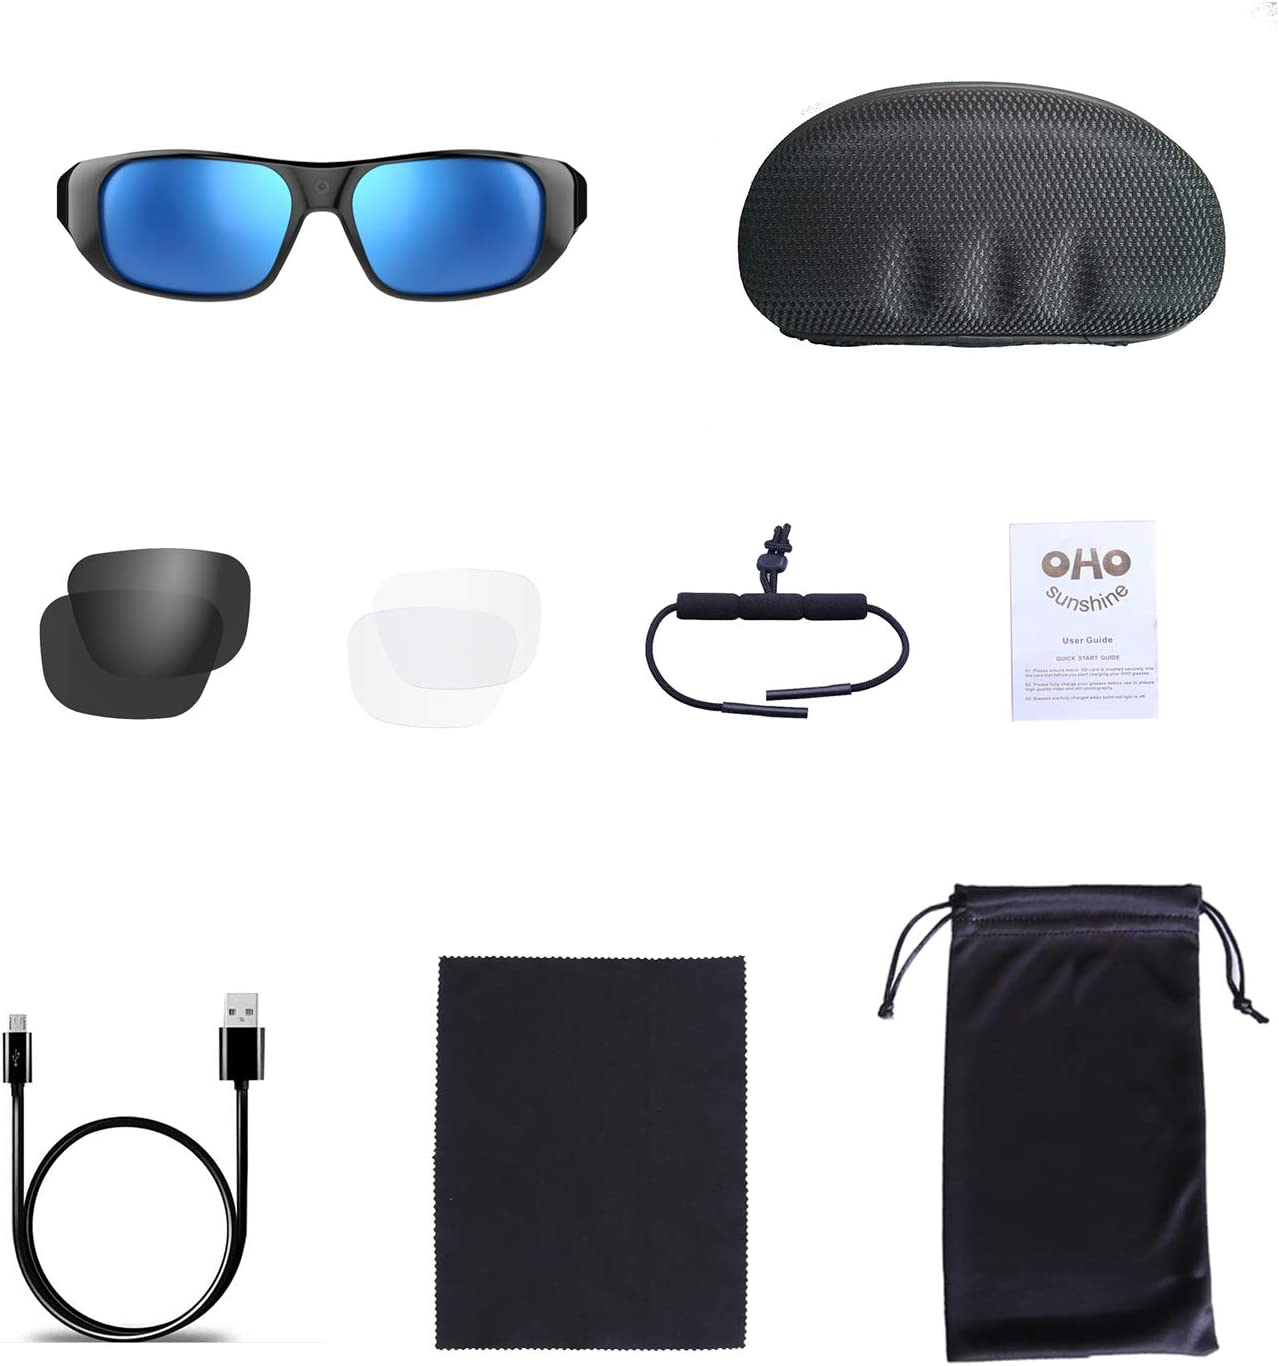 INCLUDED ACCESSORIES WITH OHO 4K ULTRA HD WATER RESISTANCE VIDEO SUNGLASSES